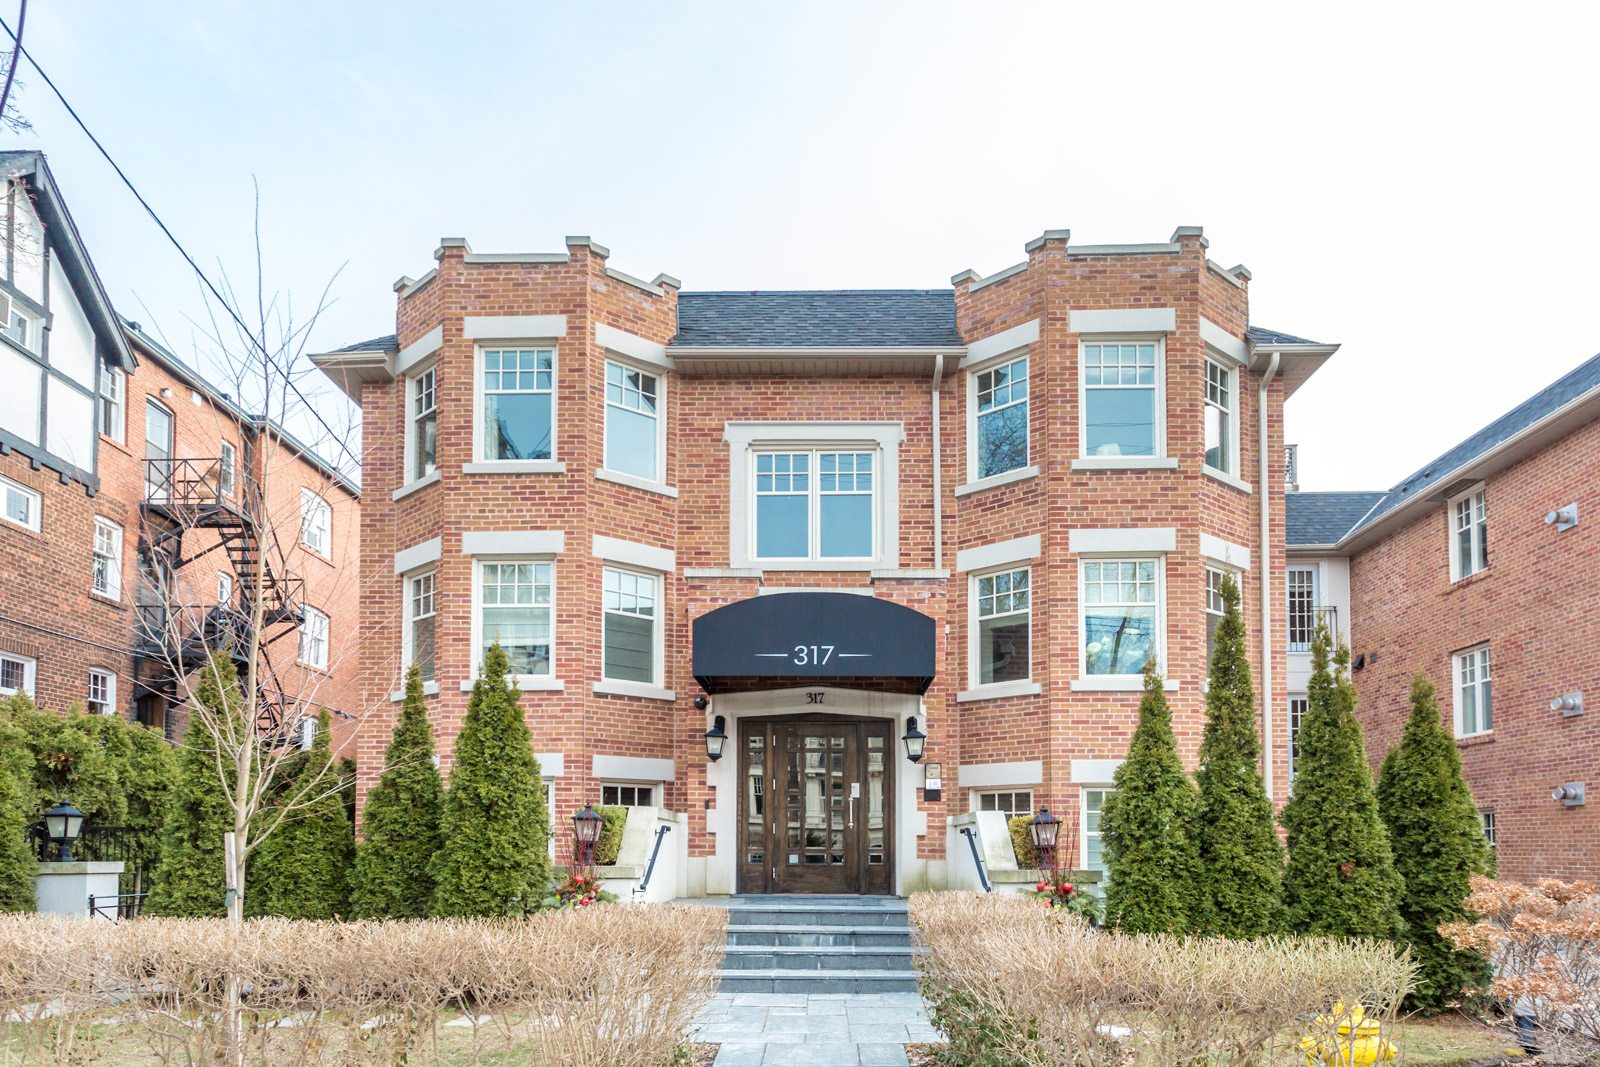 The condo for sale at 317 Lonsdale Road